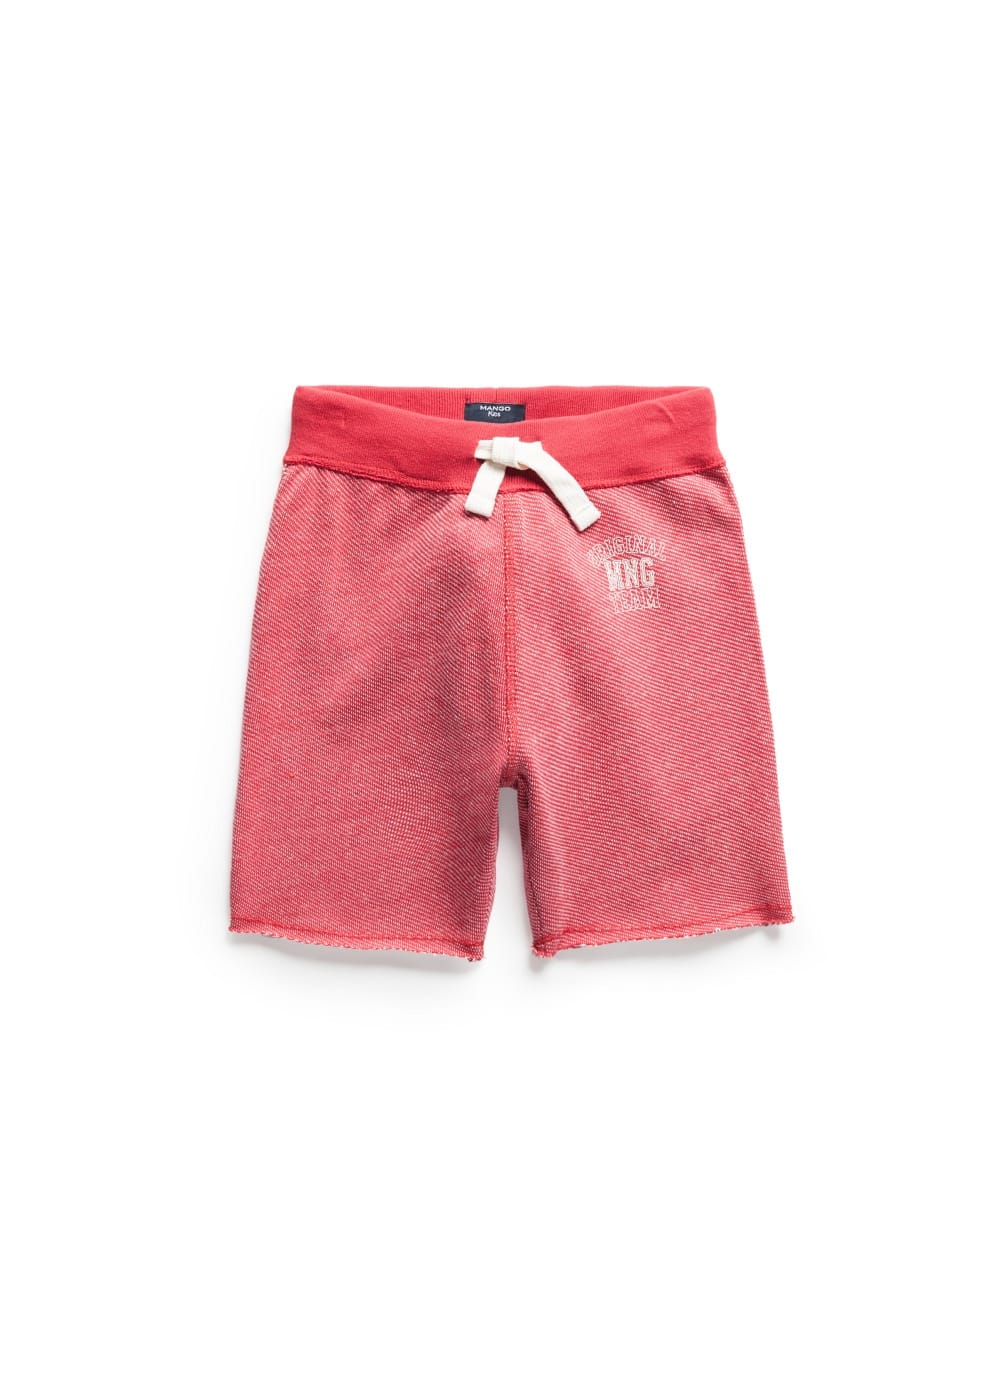 Mng team jogging bermuda shorts | MANGO